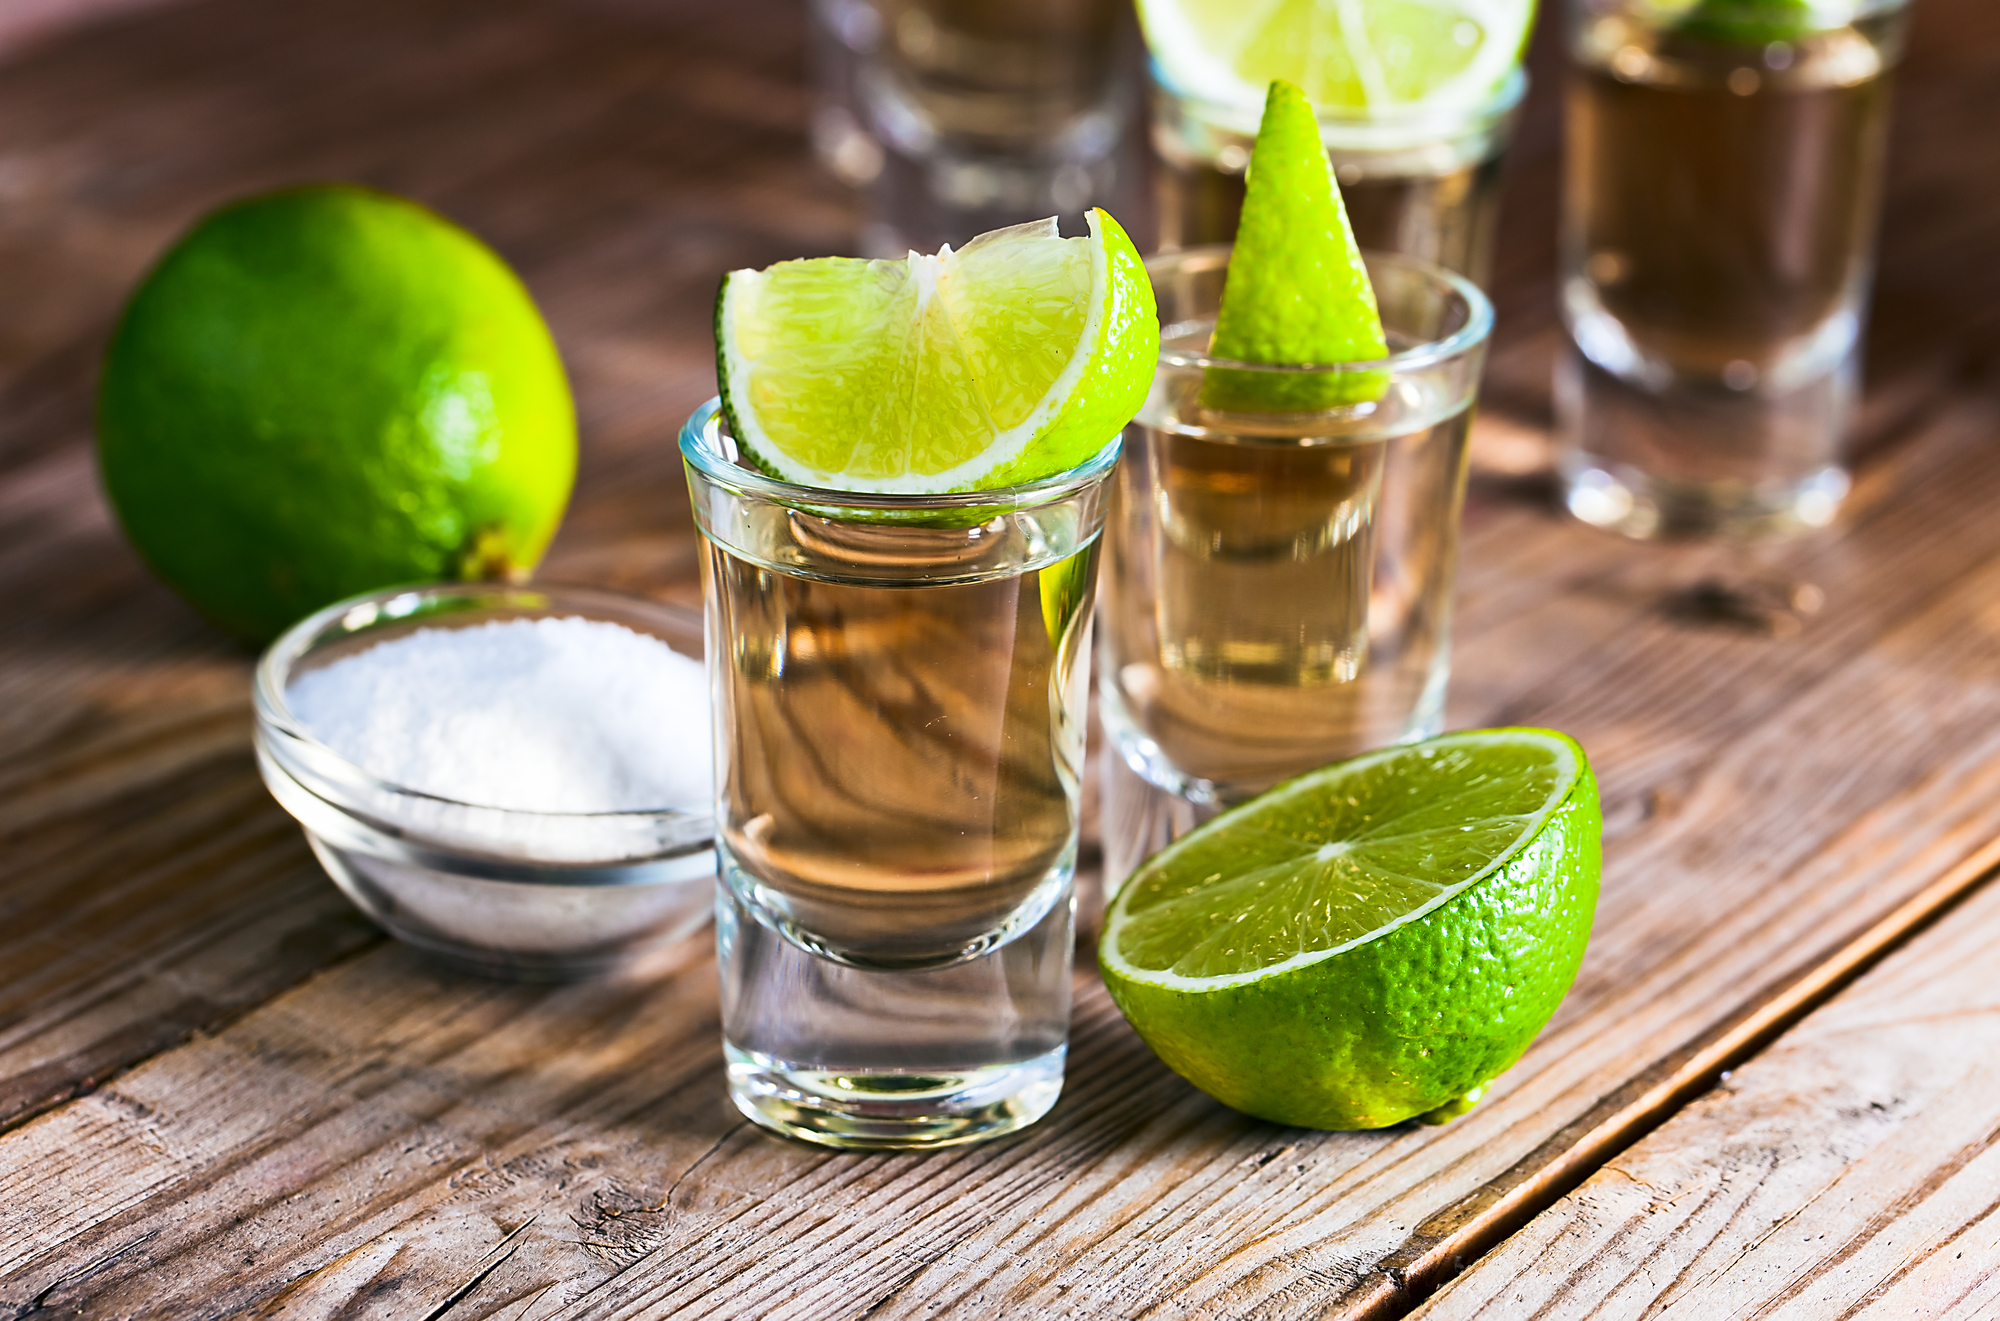 tequila shots on a table with limes